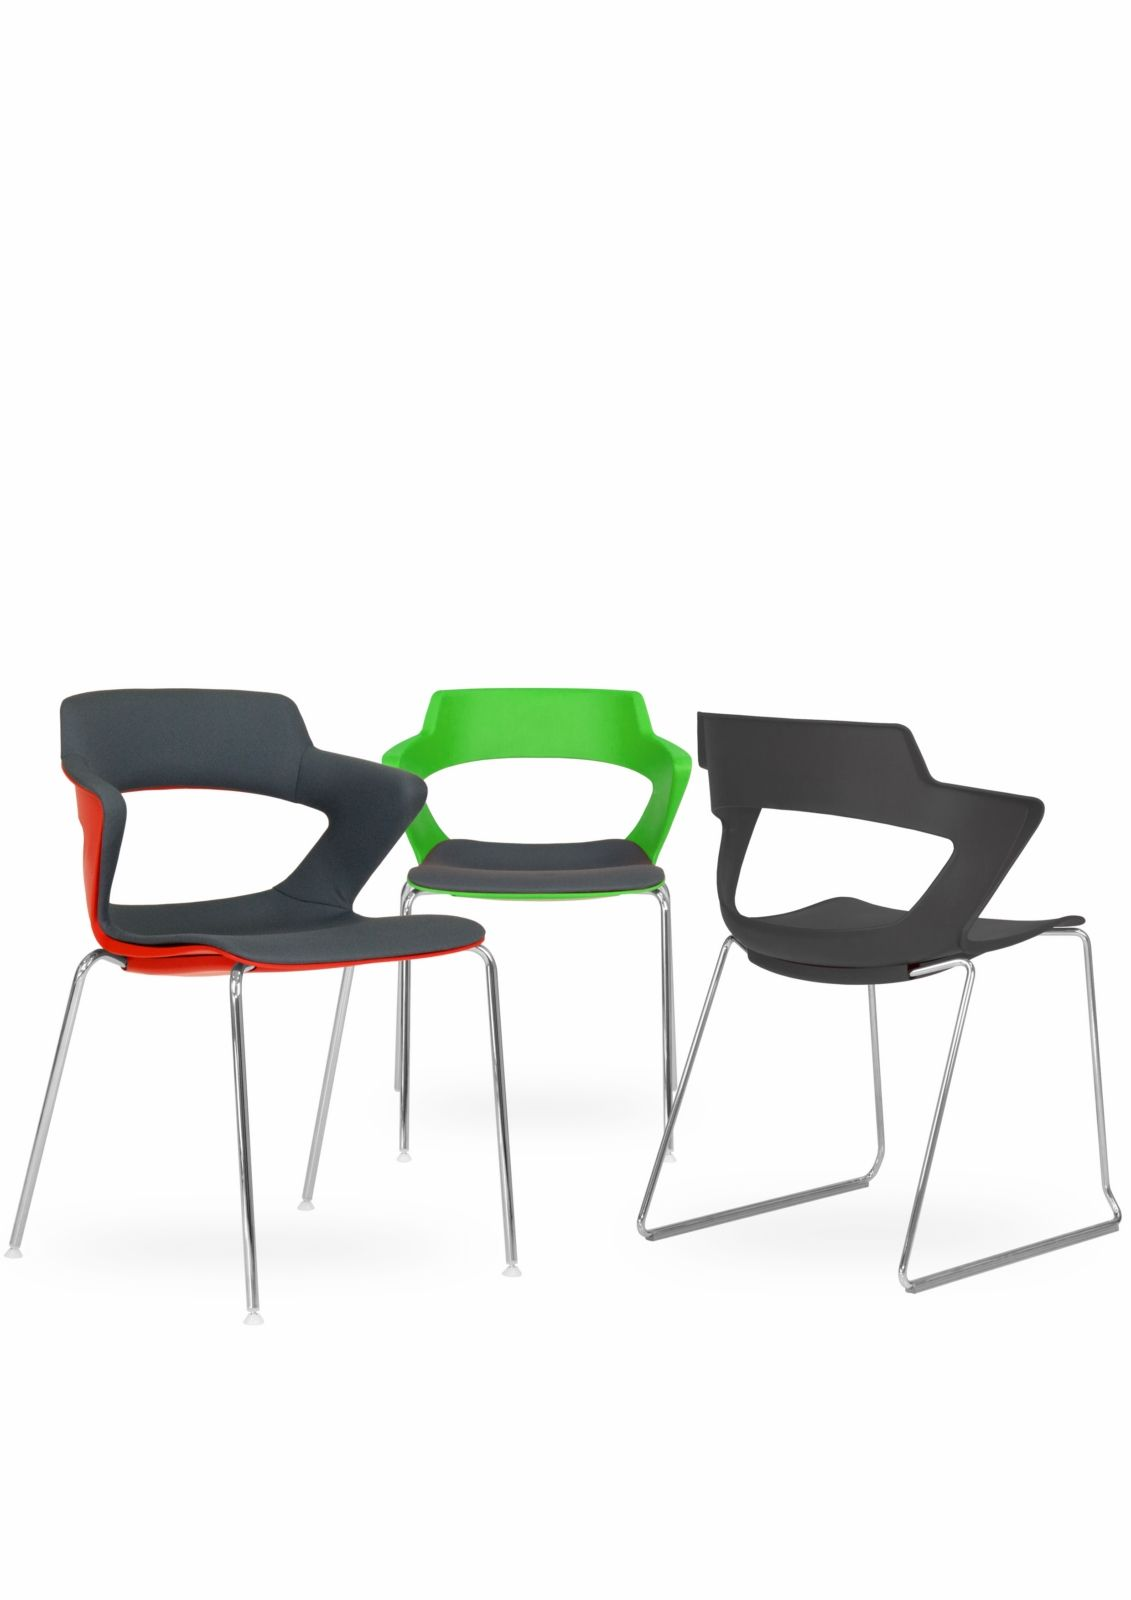 zen office furniture. Elite - Designers And Manufacturers Of Beautifully Crafted Desking, Seating, Storage Recreational Office Furniture. Zen Furniture